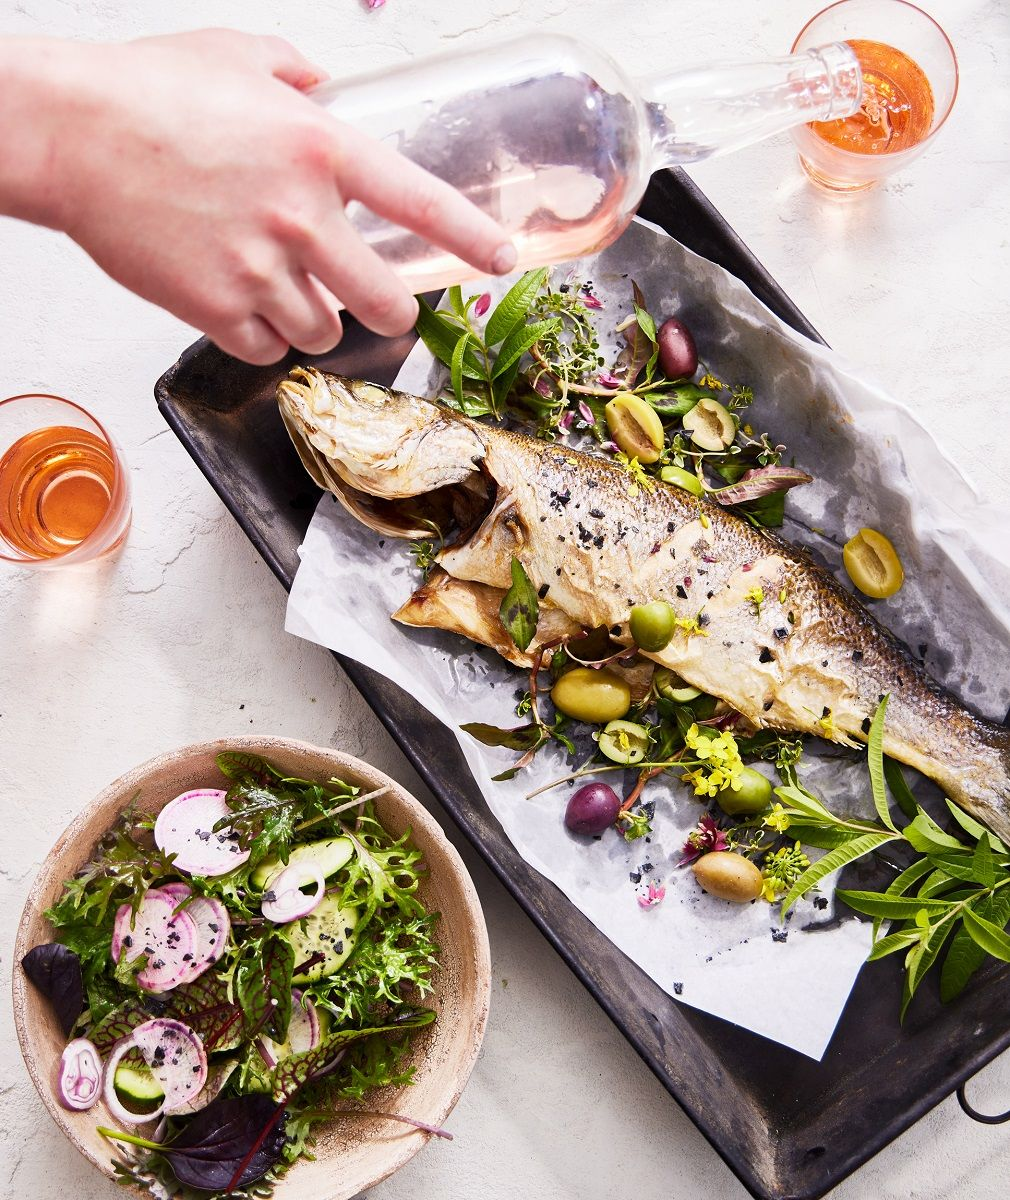 Grilled fish on a pan with salad and orange wine